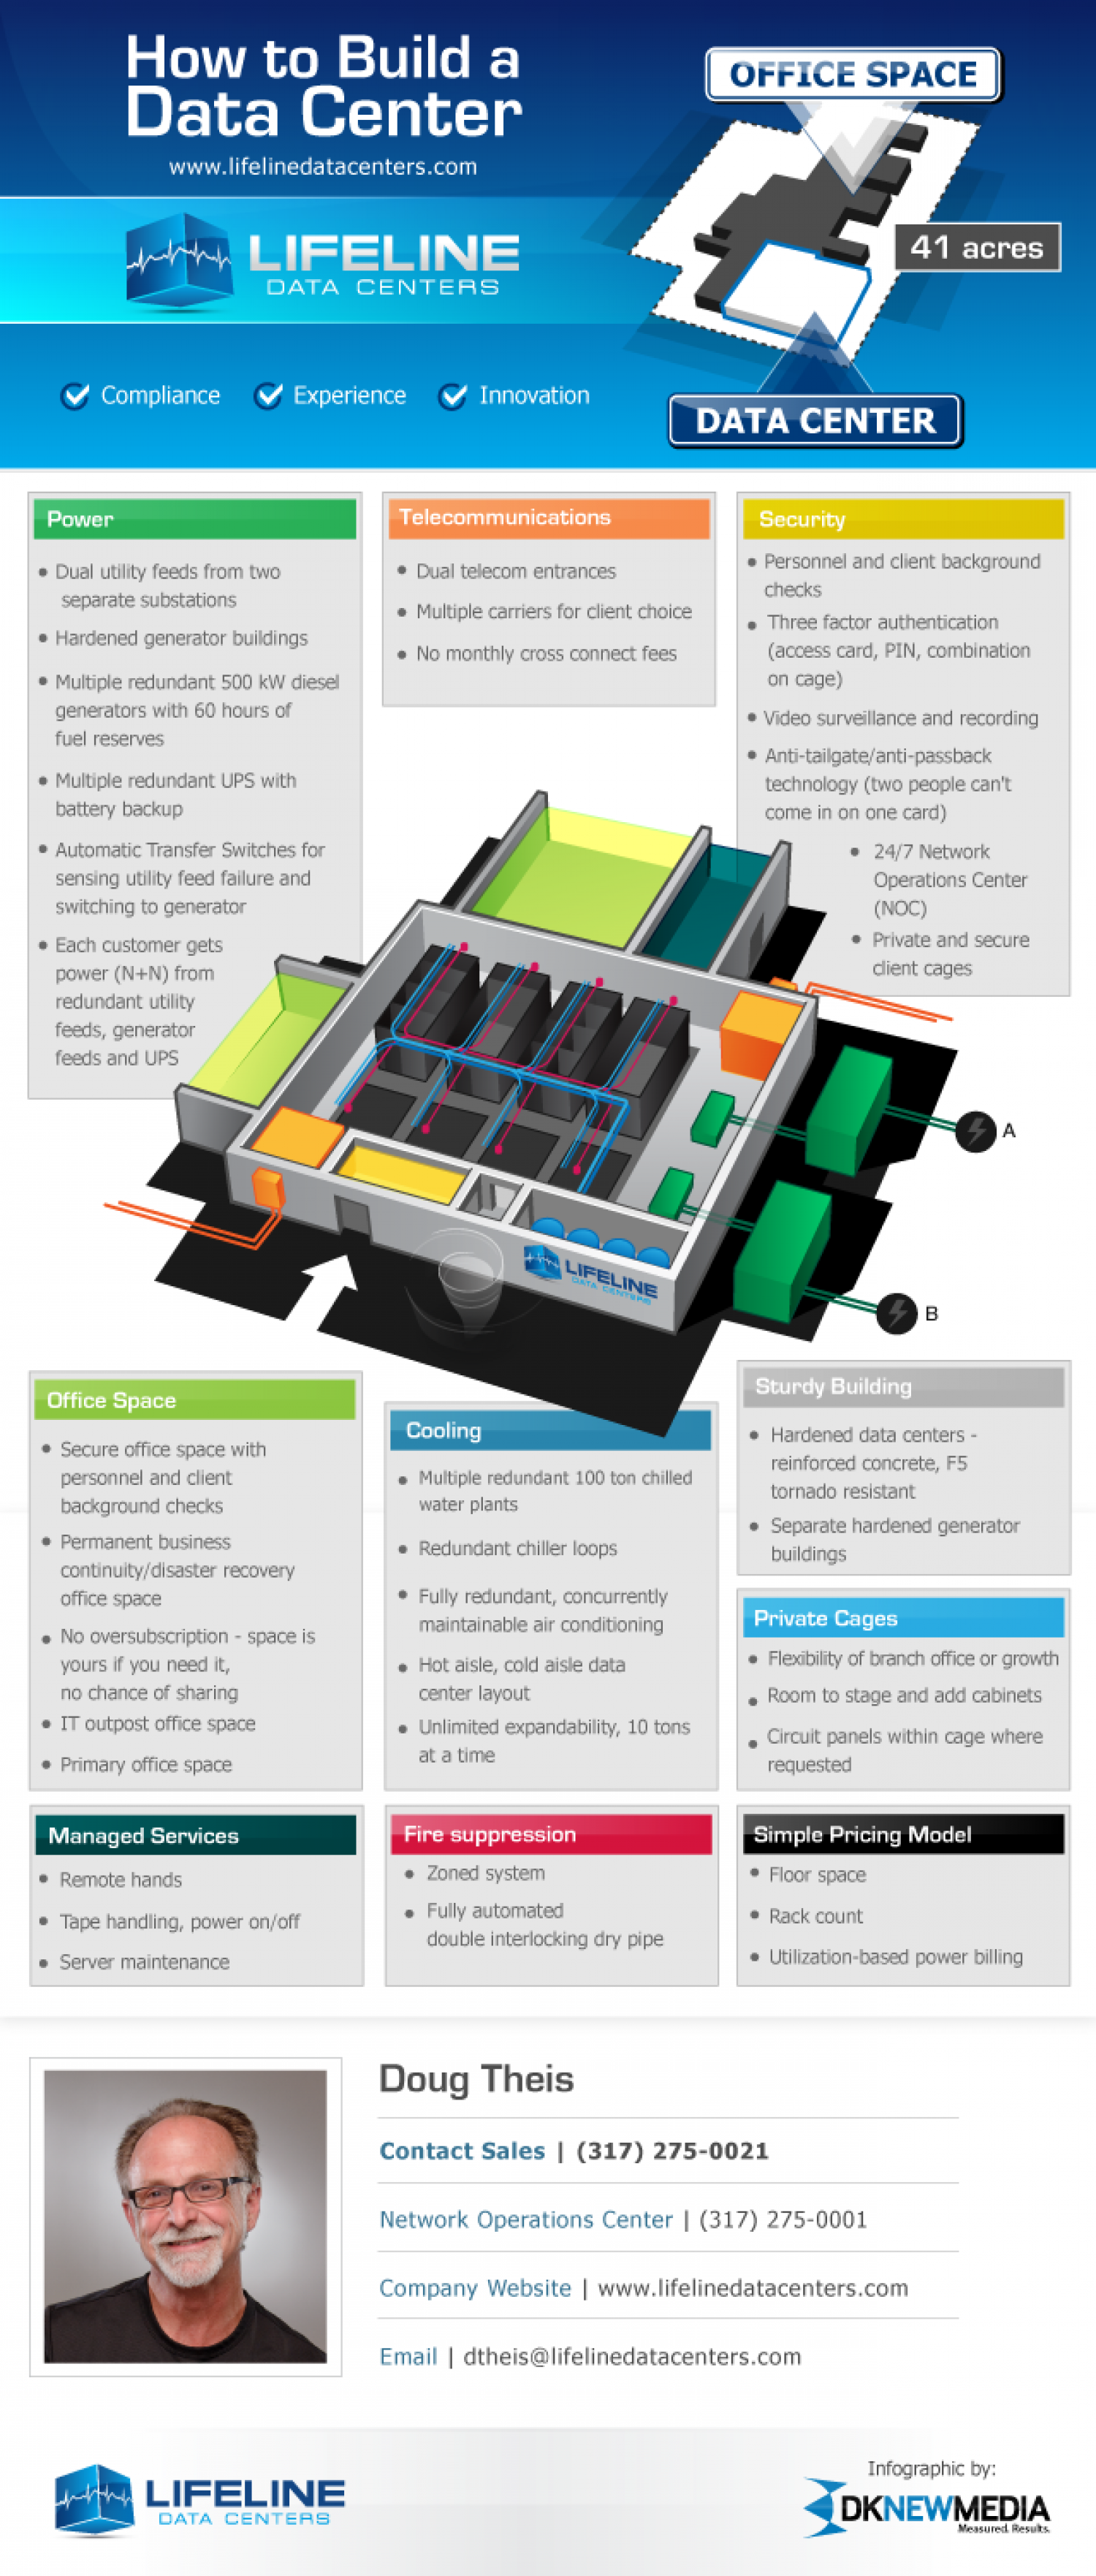 How to Build a Data Center Infographic